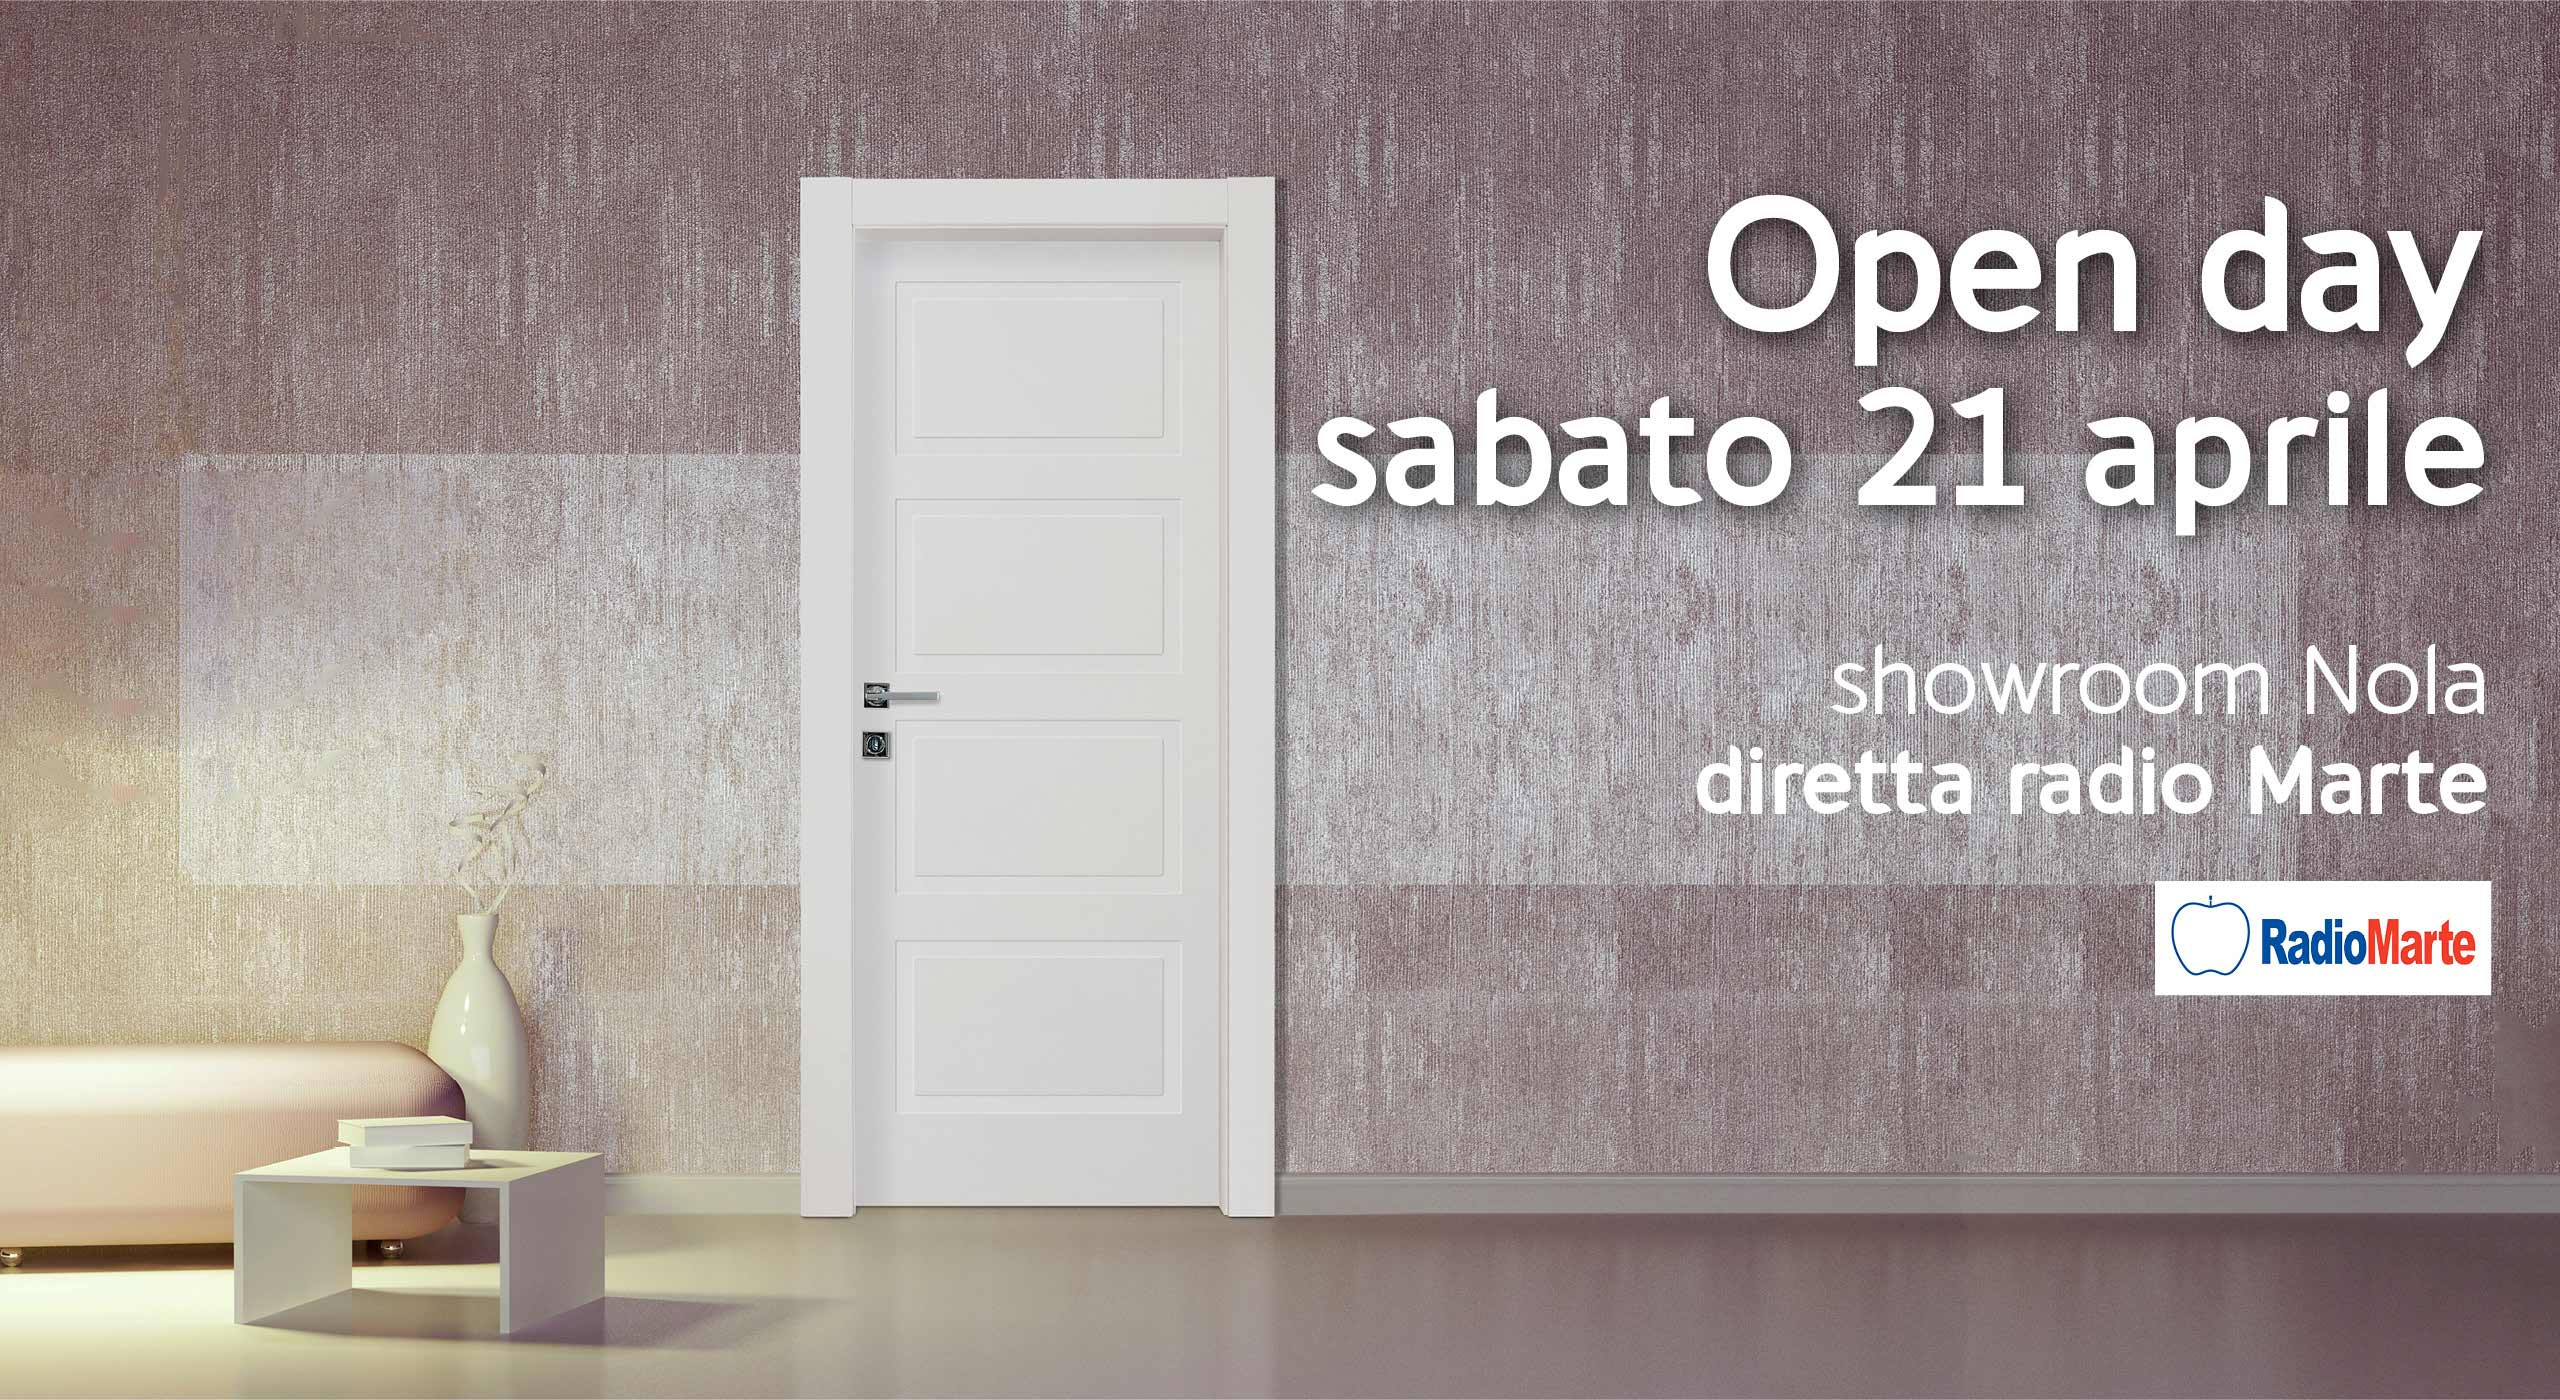 Openday 21 aprile